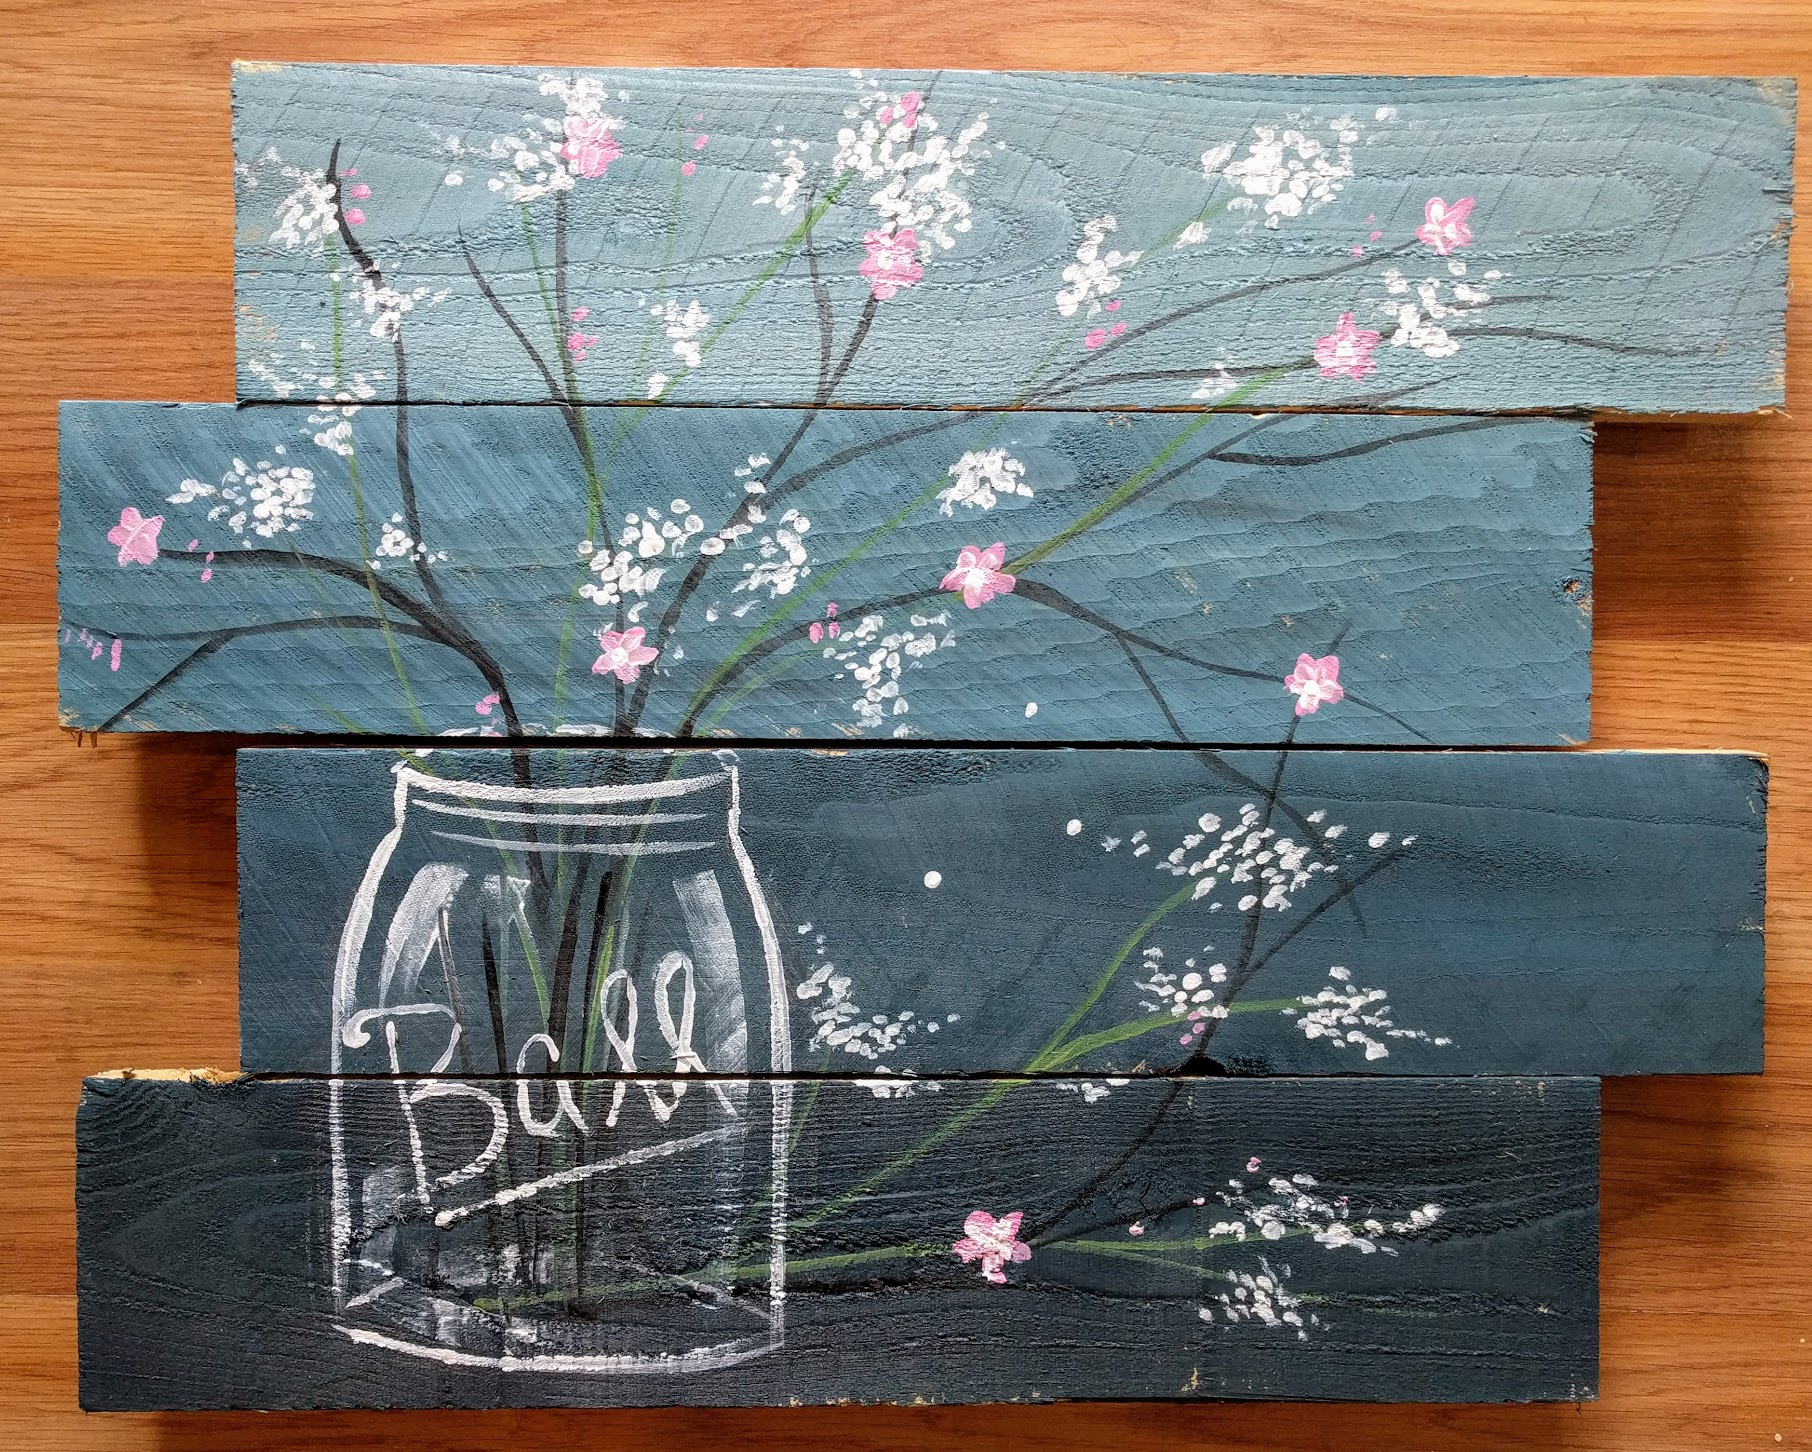 Ball Jar Painting on Pallet